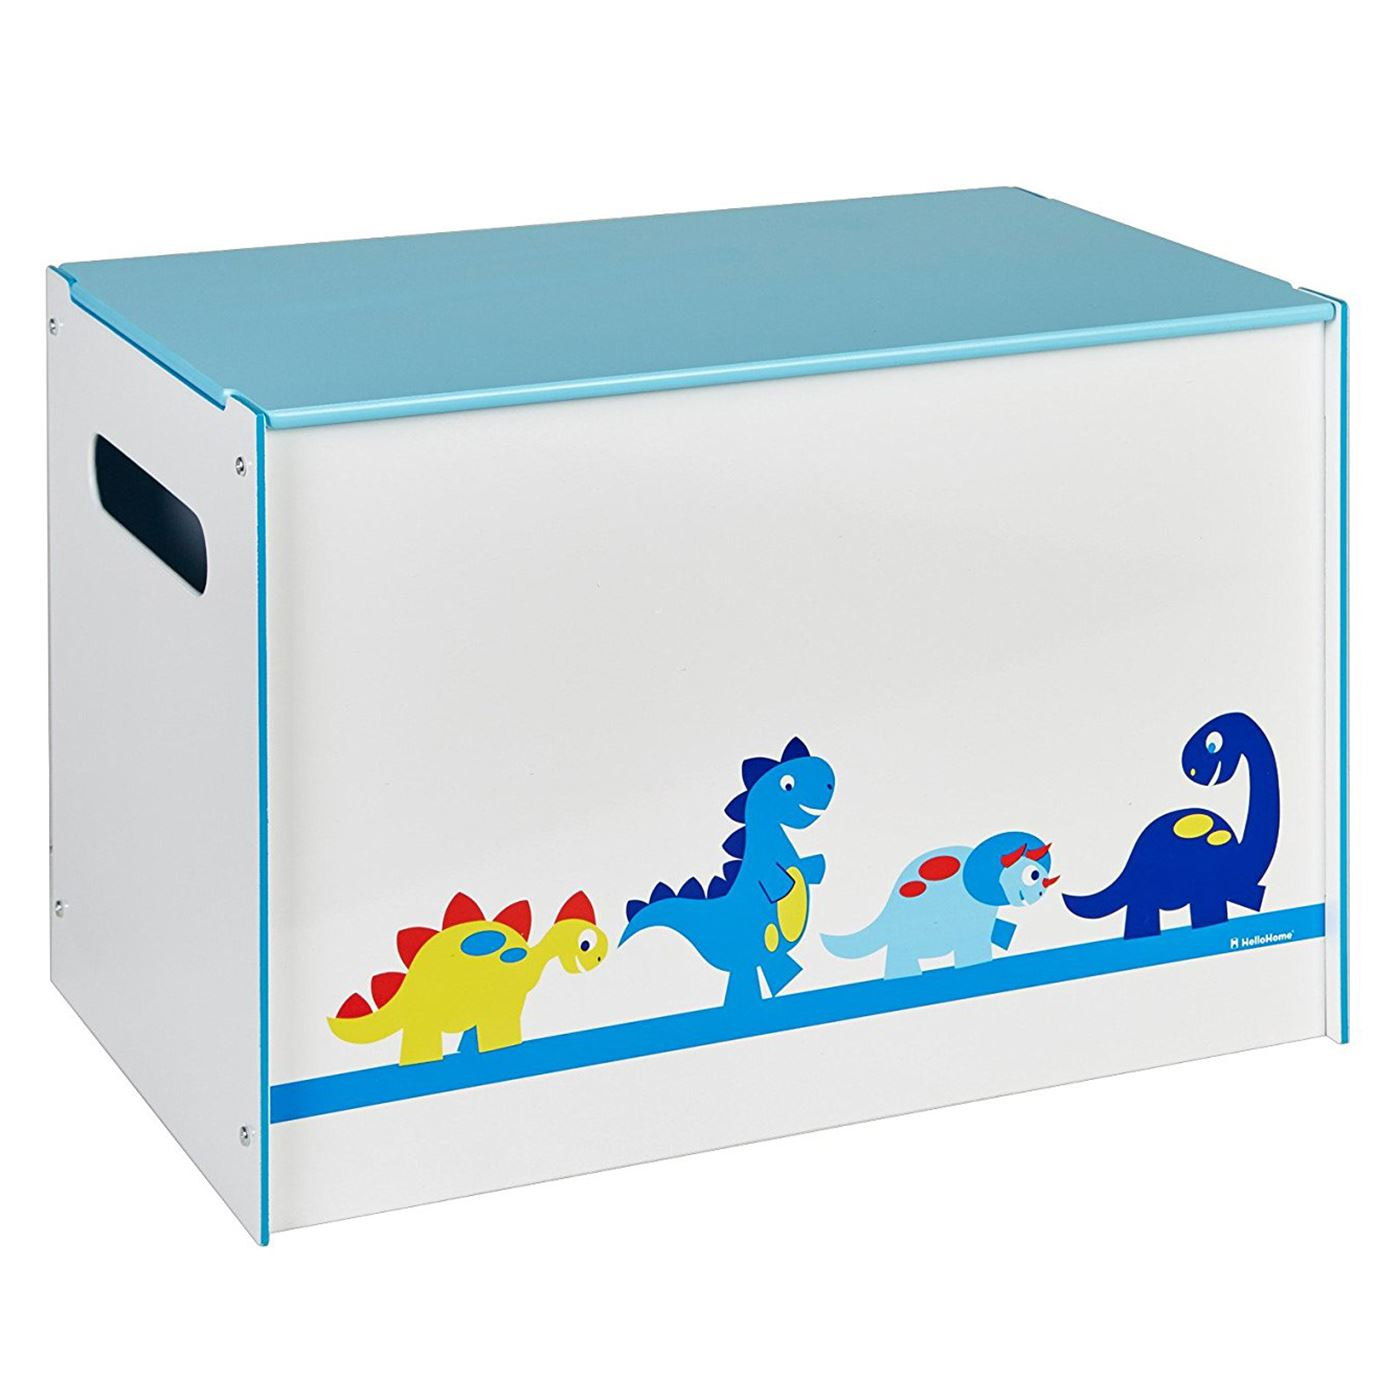 Toy Box Toys Details About Dinosaurs Mdf Toy Box Childrens Storage Toys Games Books Bedroom Storage New